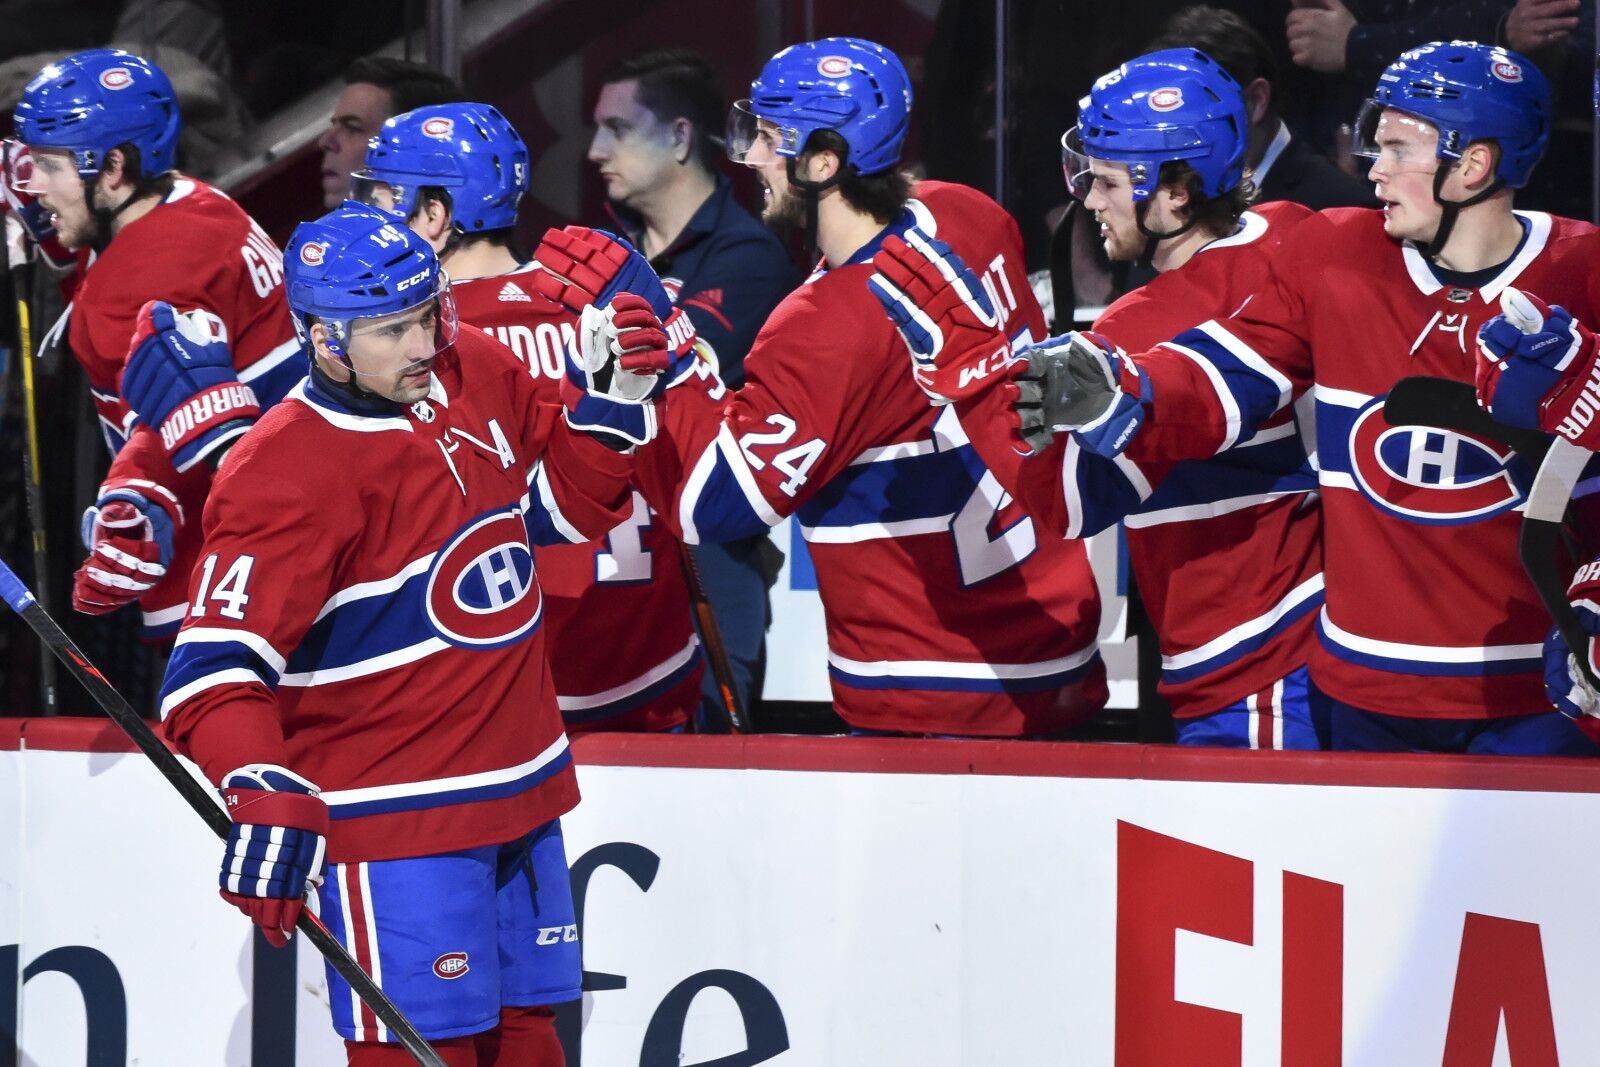 f134ed9ee Montreal Canadiens  Tomas Plekanec believes the playoffs are a possibility